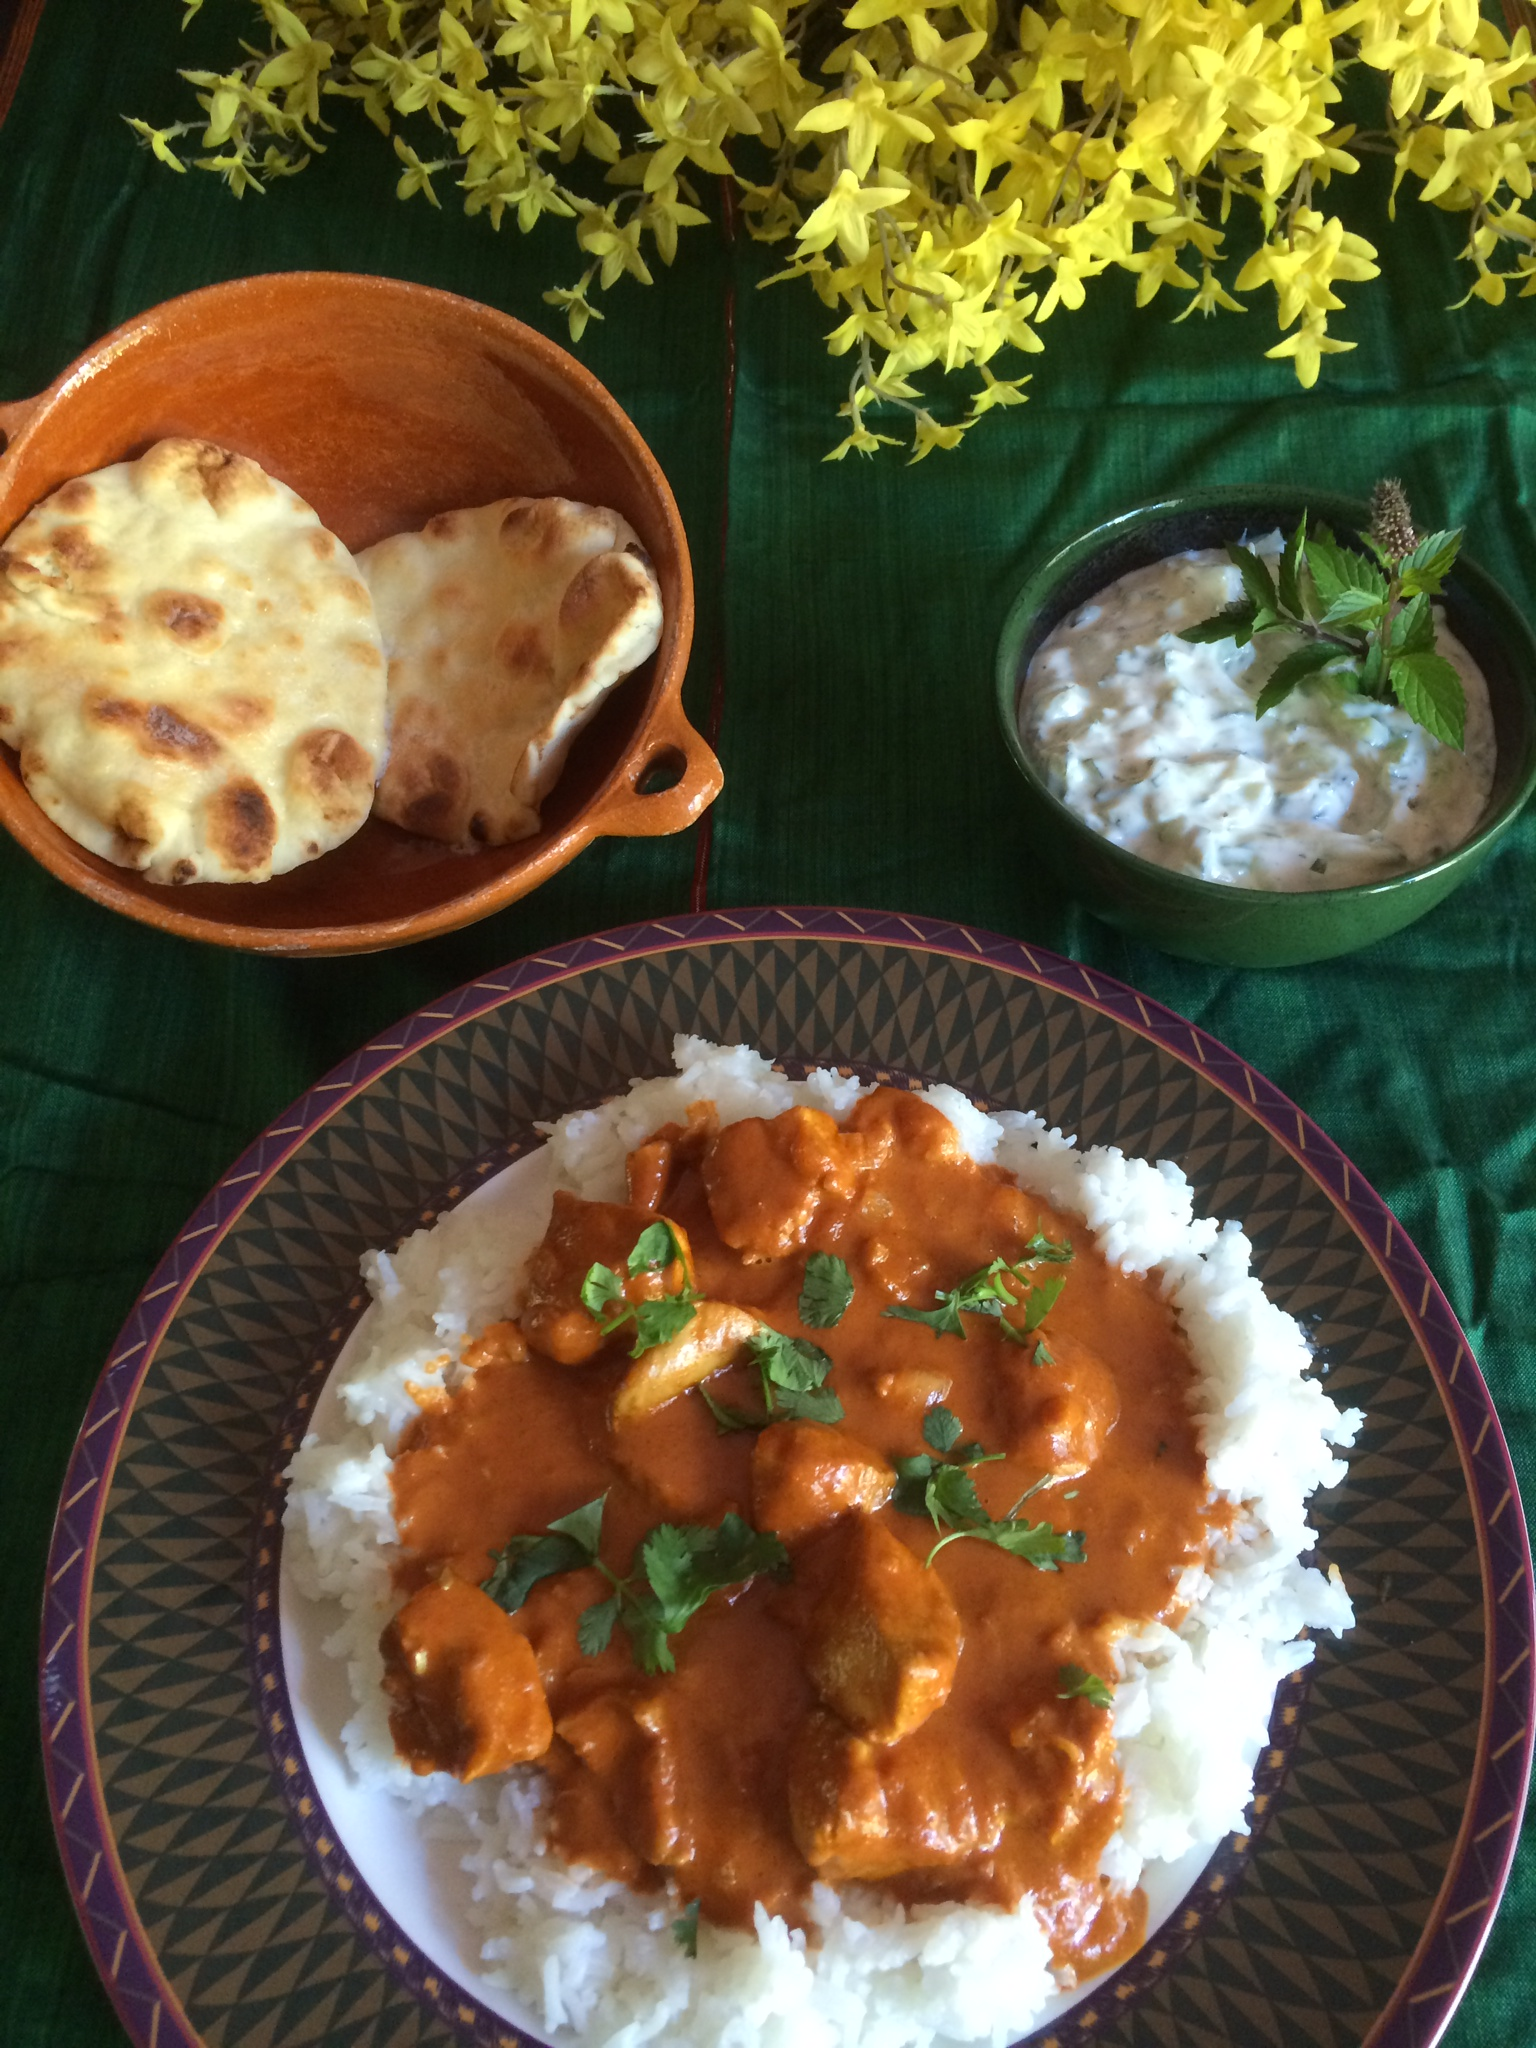 Perfectly spiced chicken tikka masala, served with basmati rice, naan, and  cucumber-mint raita .